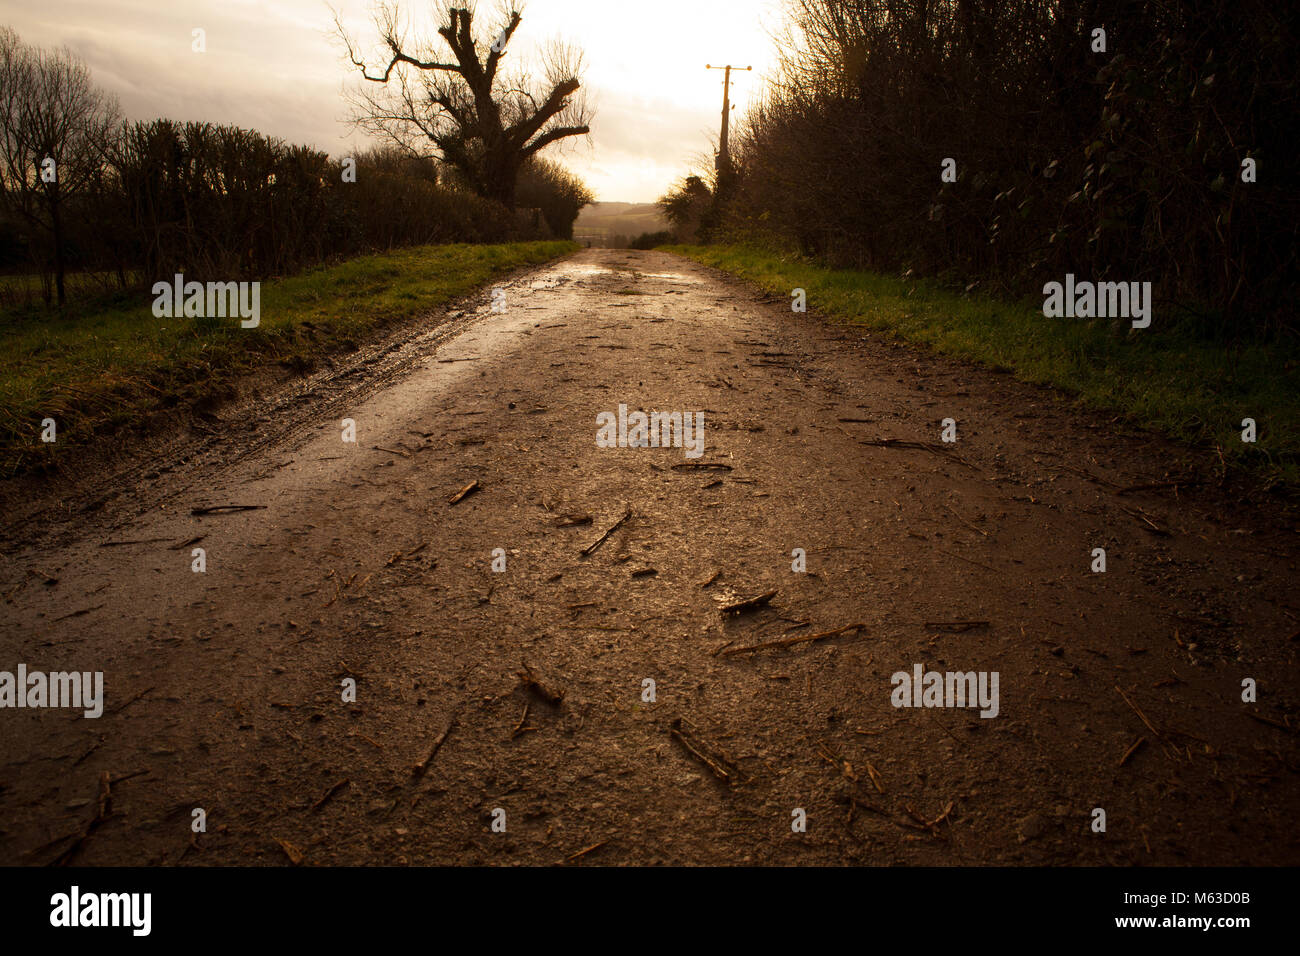 Old country road around Deddington leading out of image with vanishing point - Stock Image